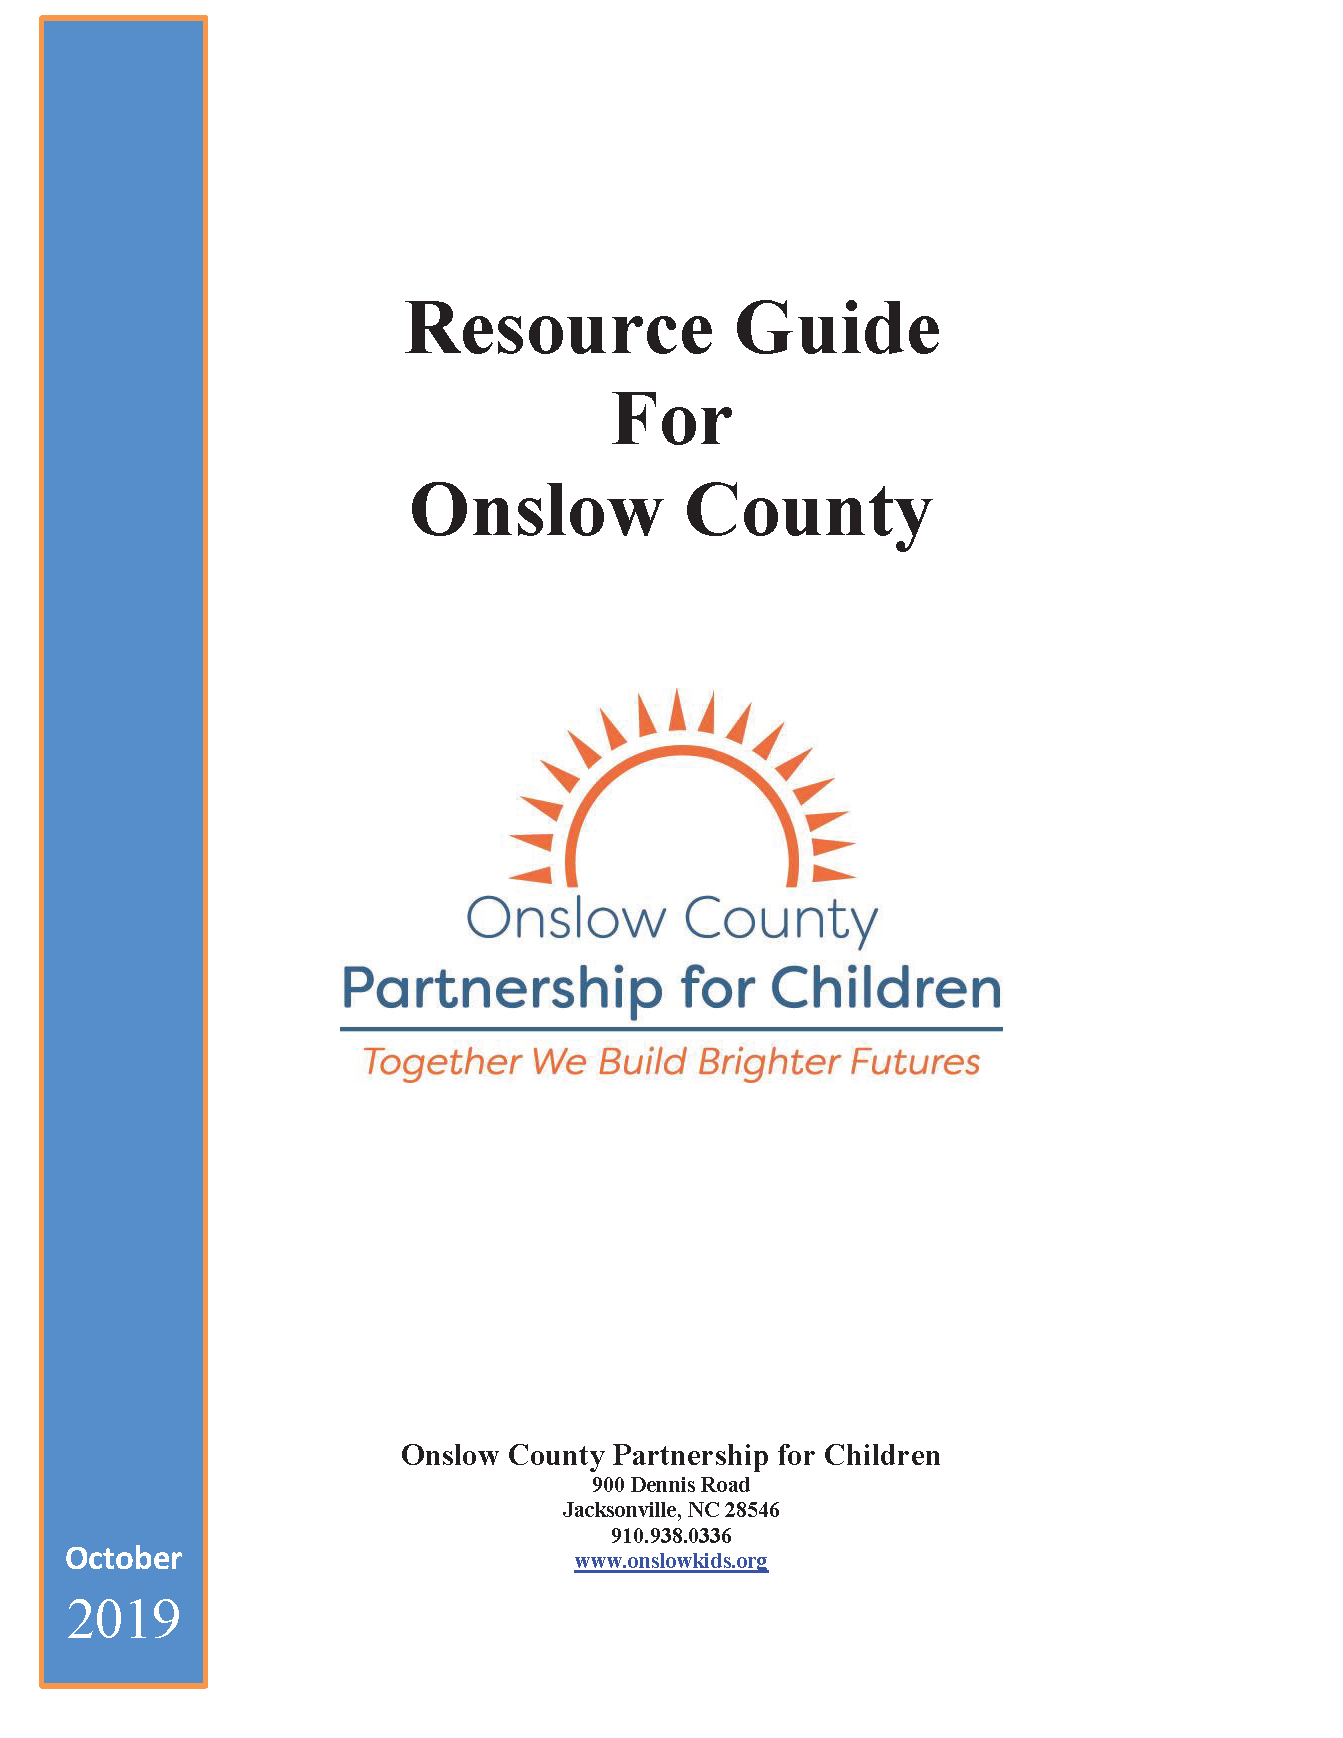 Onslow-County-Resource-Guide-10.2019_Page_01